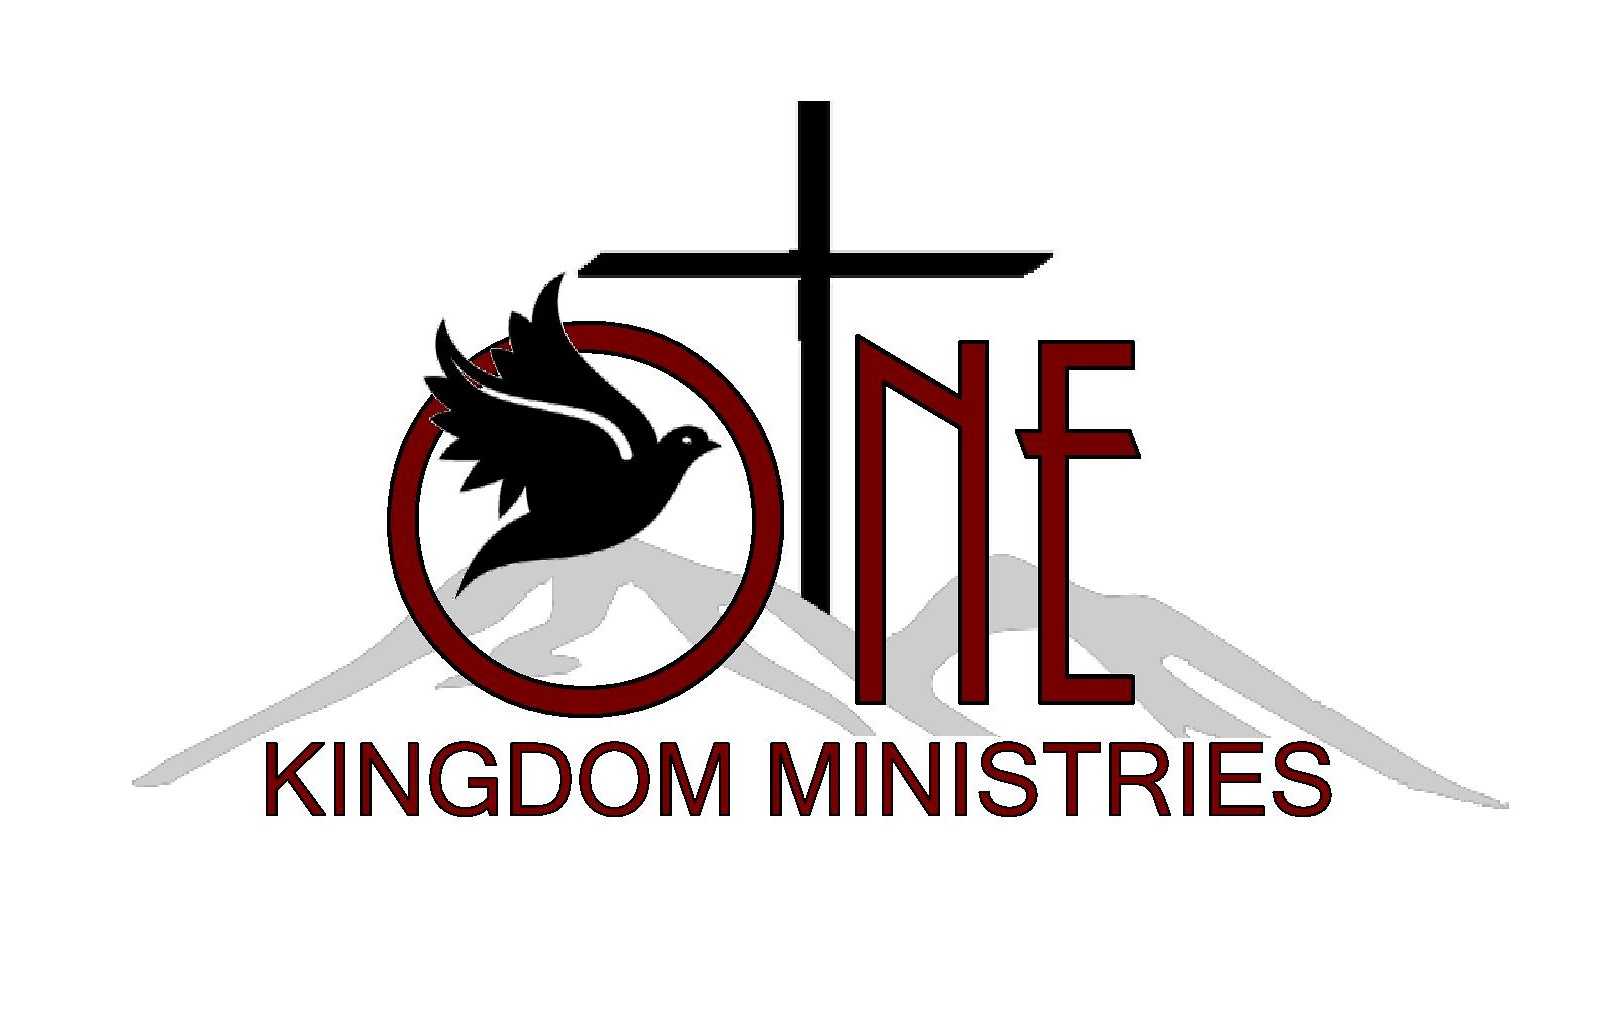 ONE KINGDOM MINISTRIES